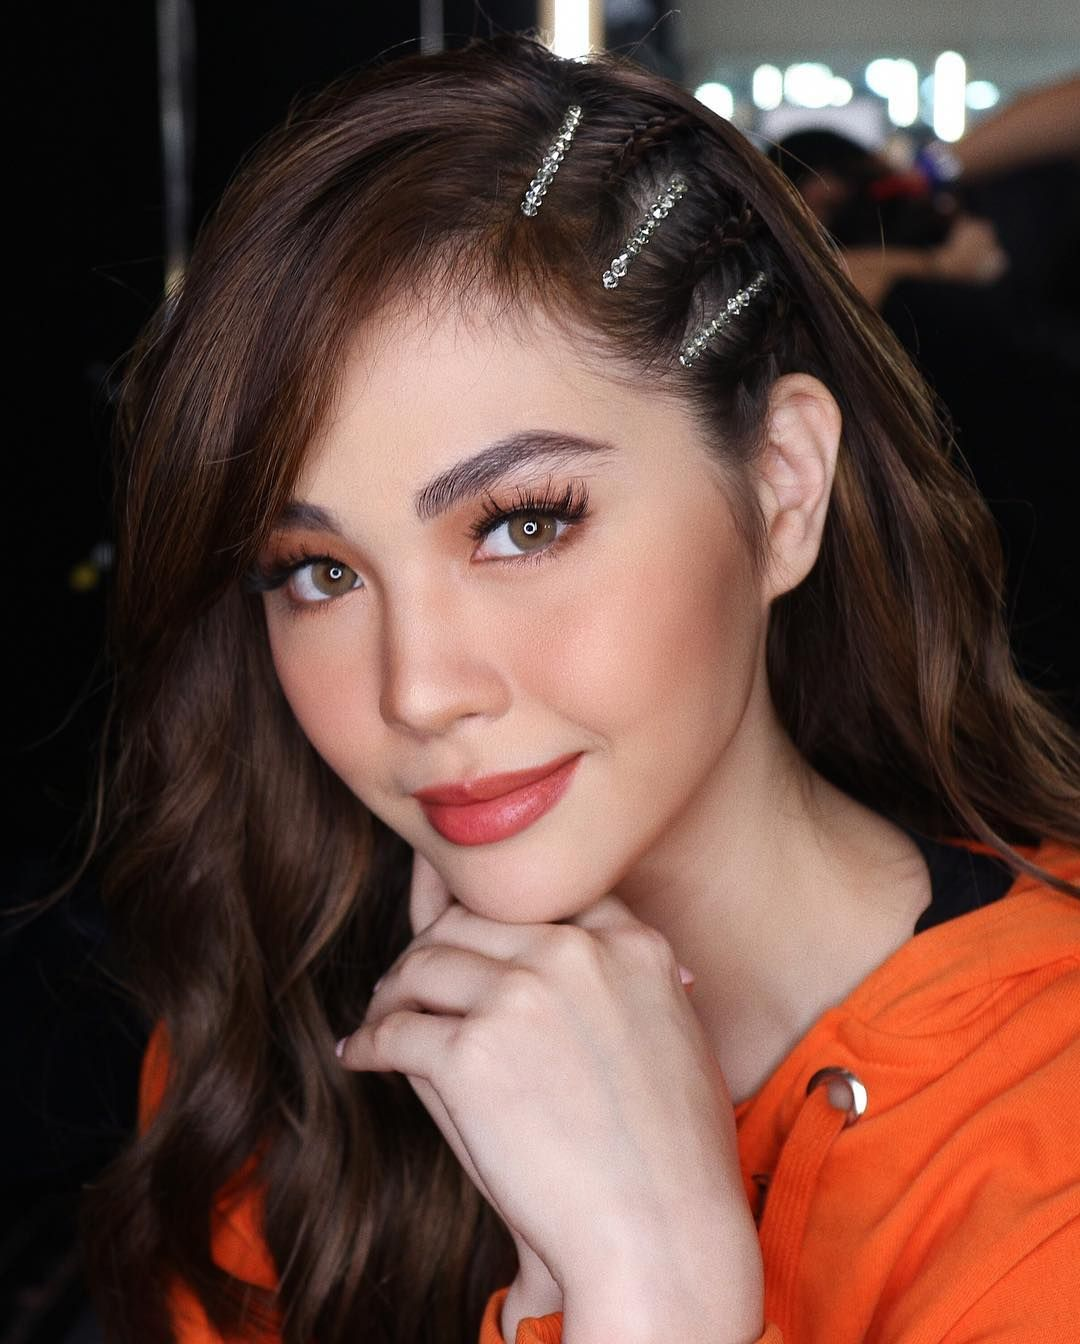 Celebrities Are Bringing Back This '90s Hairstyle - Star Style PH